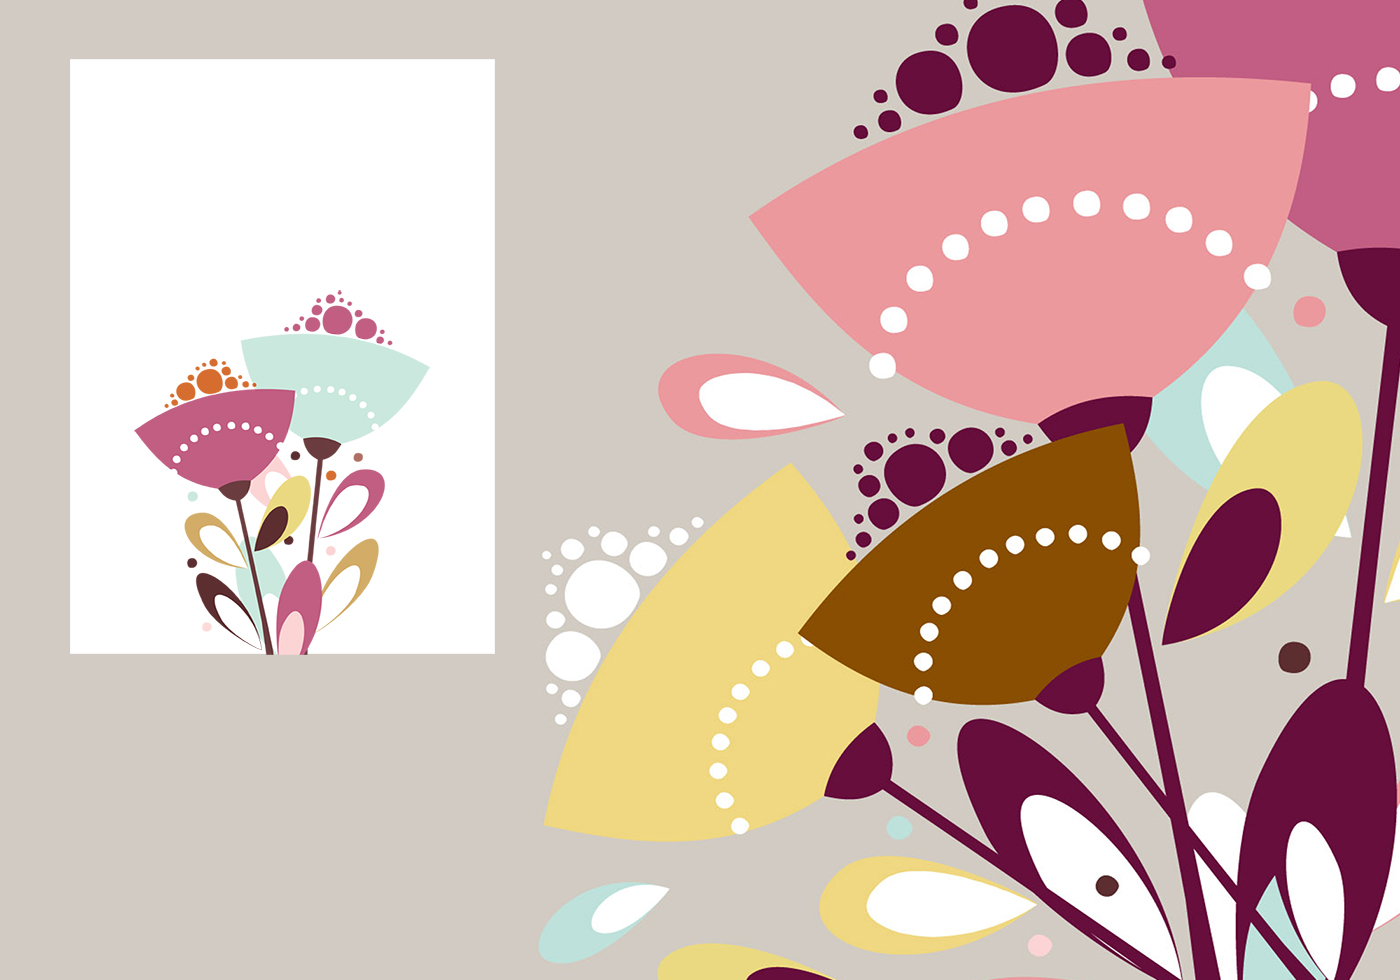 Abstract Floral Photoshop Wallpaper Brush Pack Free Photoshop